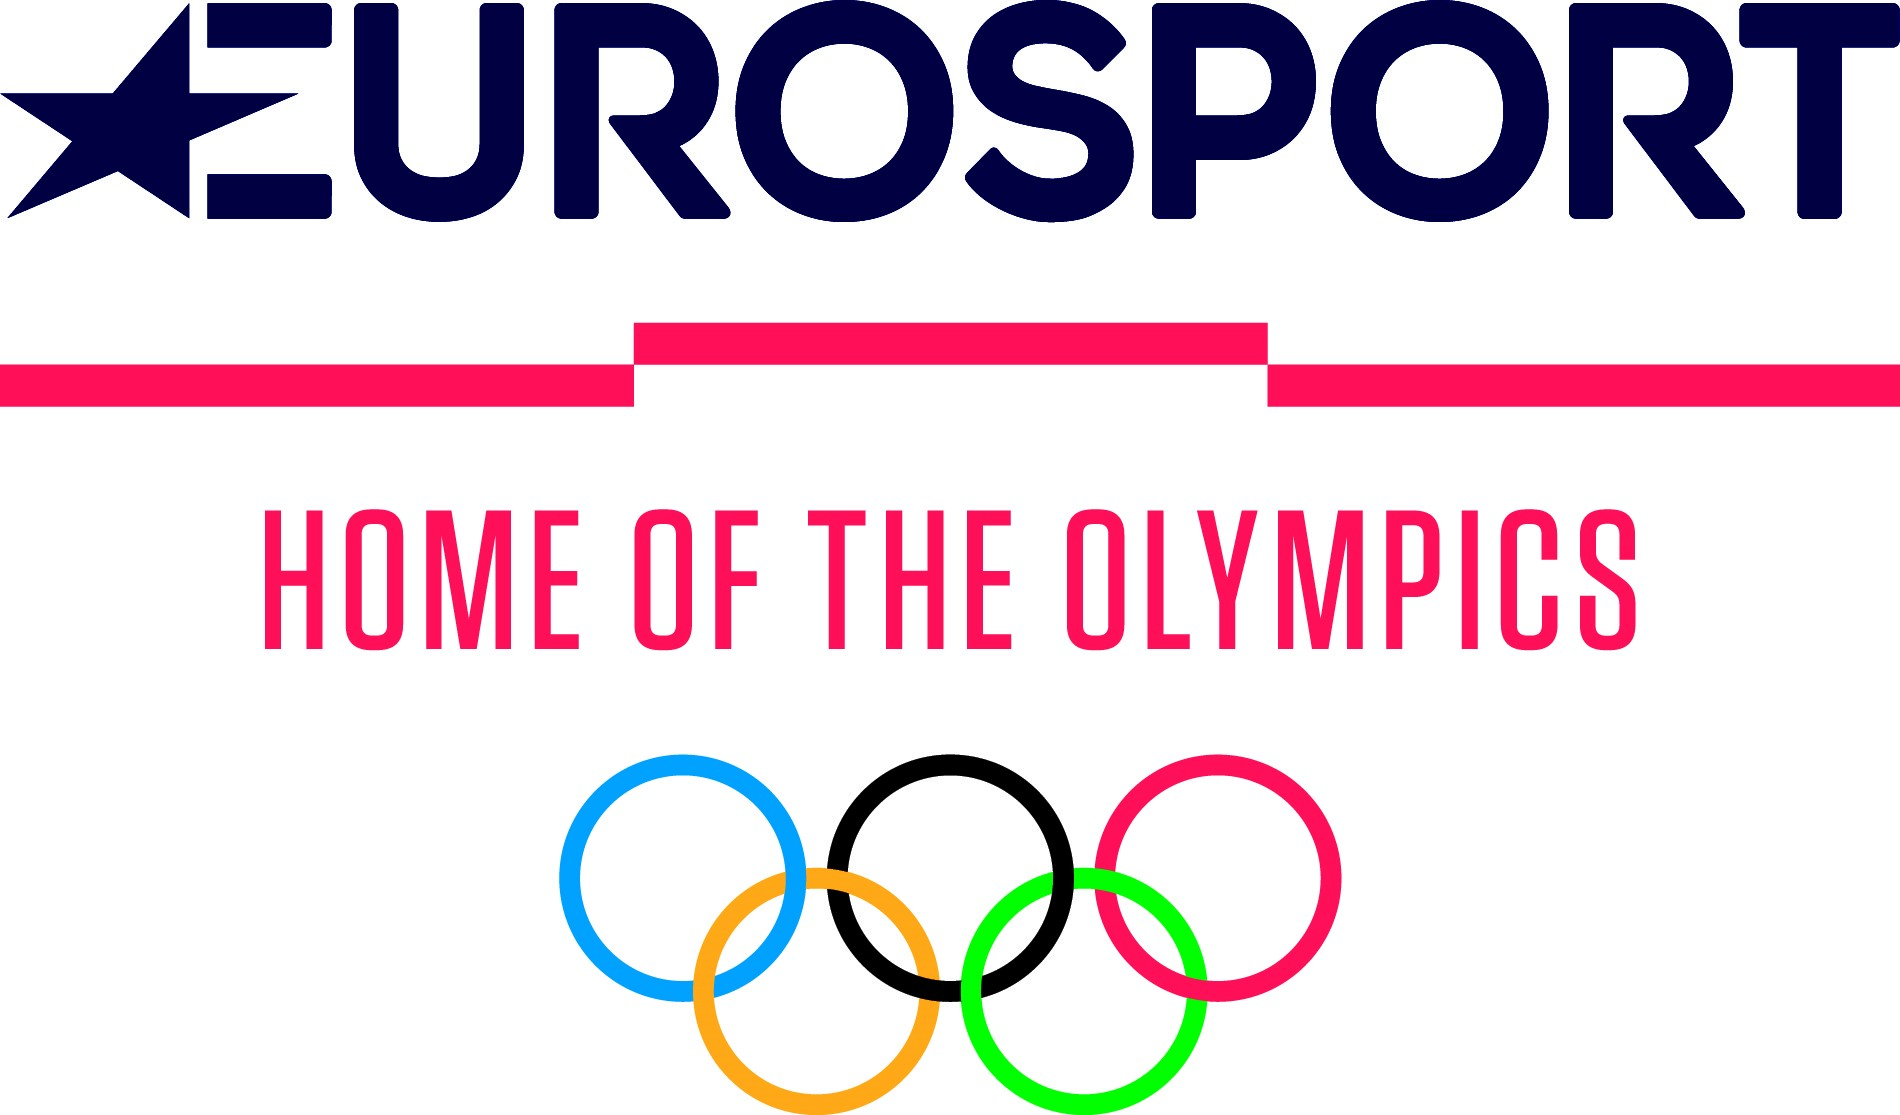 Home of the olympics eurosport f hrt olympia logo ein for Olympic homes